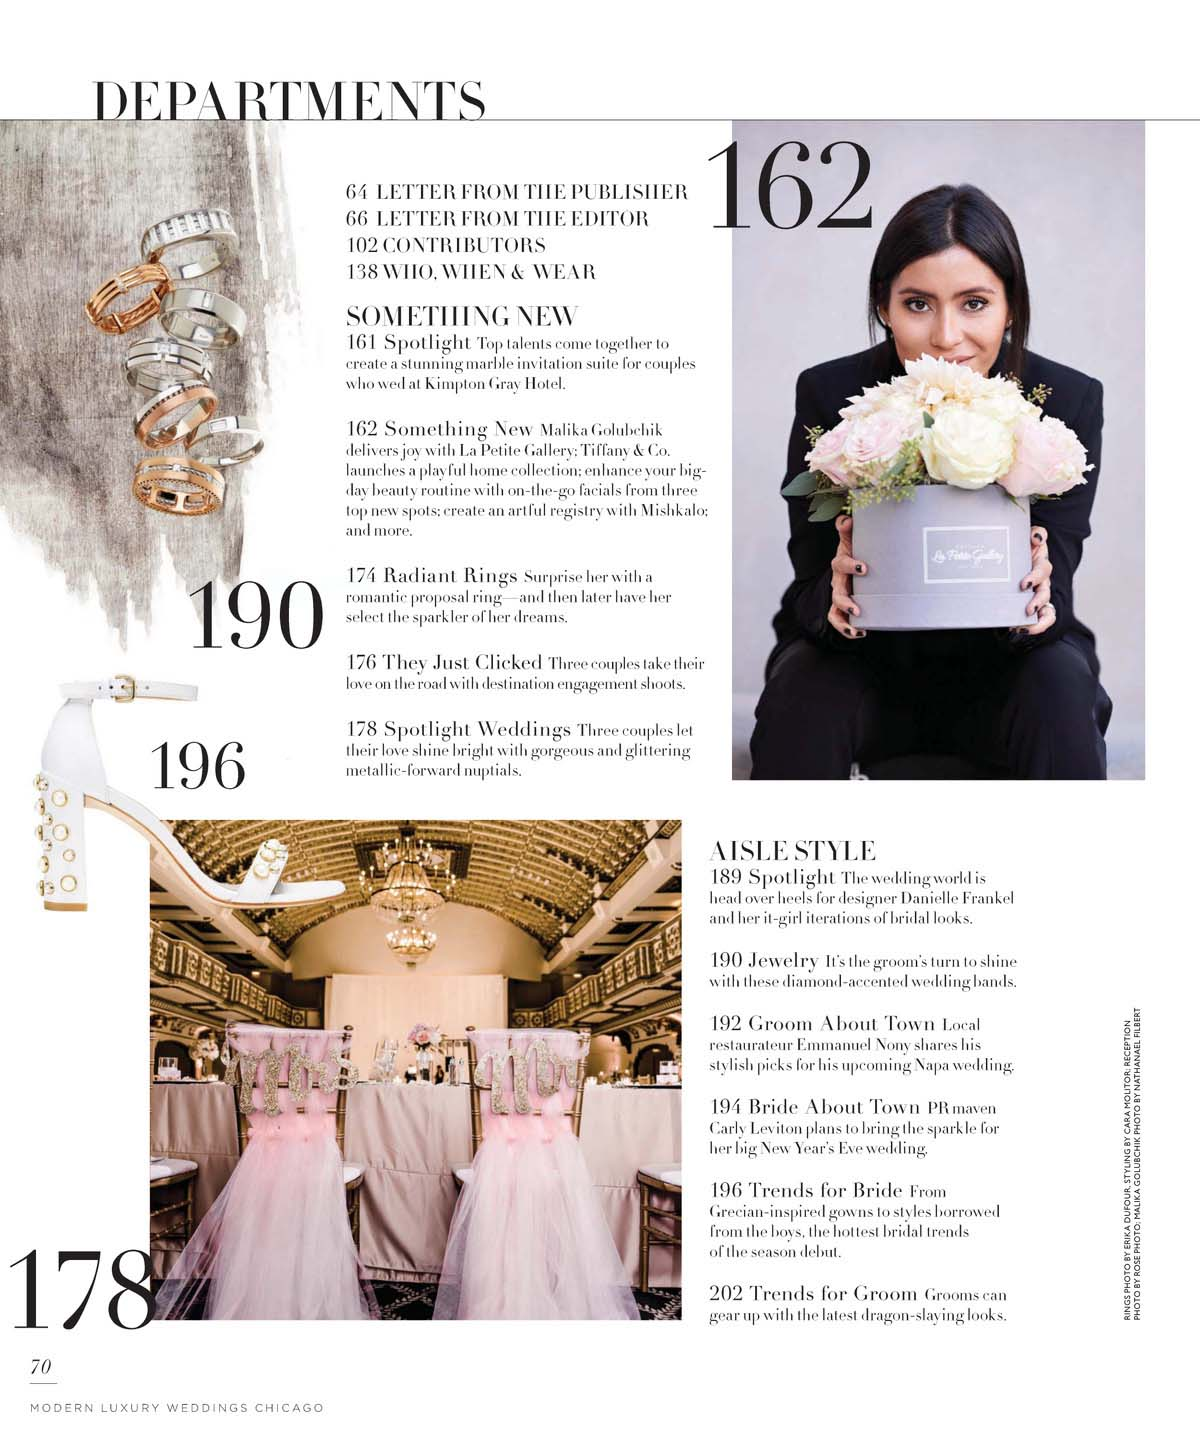 Luxury WEDDINGS Chicago Photographer - SS 2018 Issue - Rose Photo Complete Coverage-2.jpg